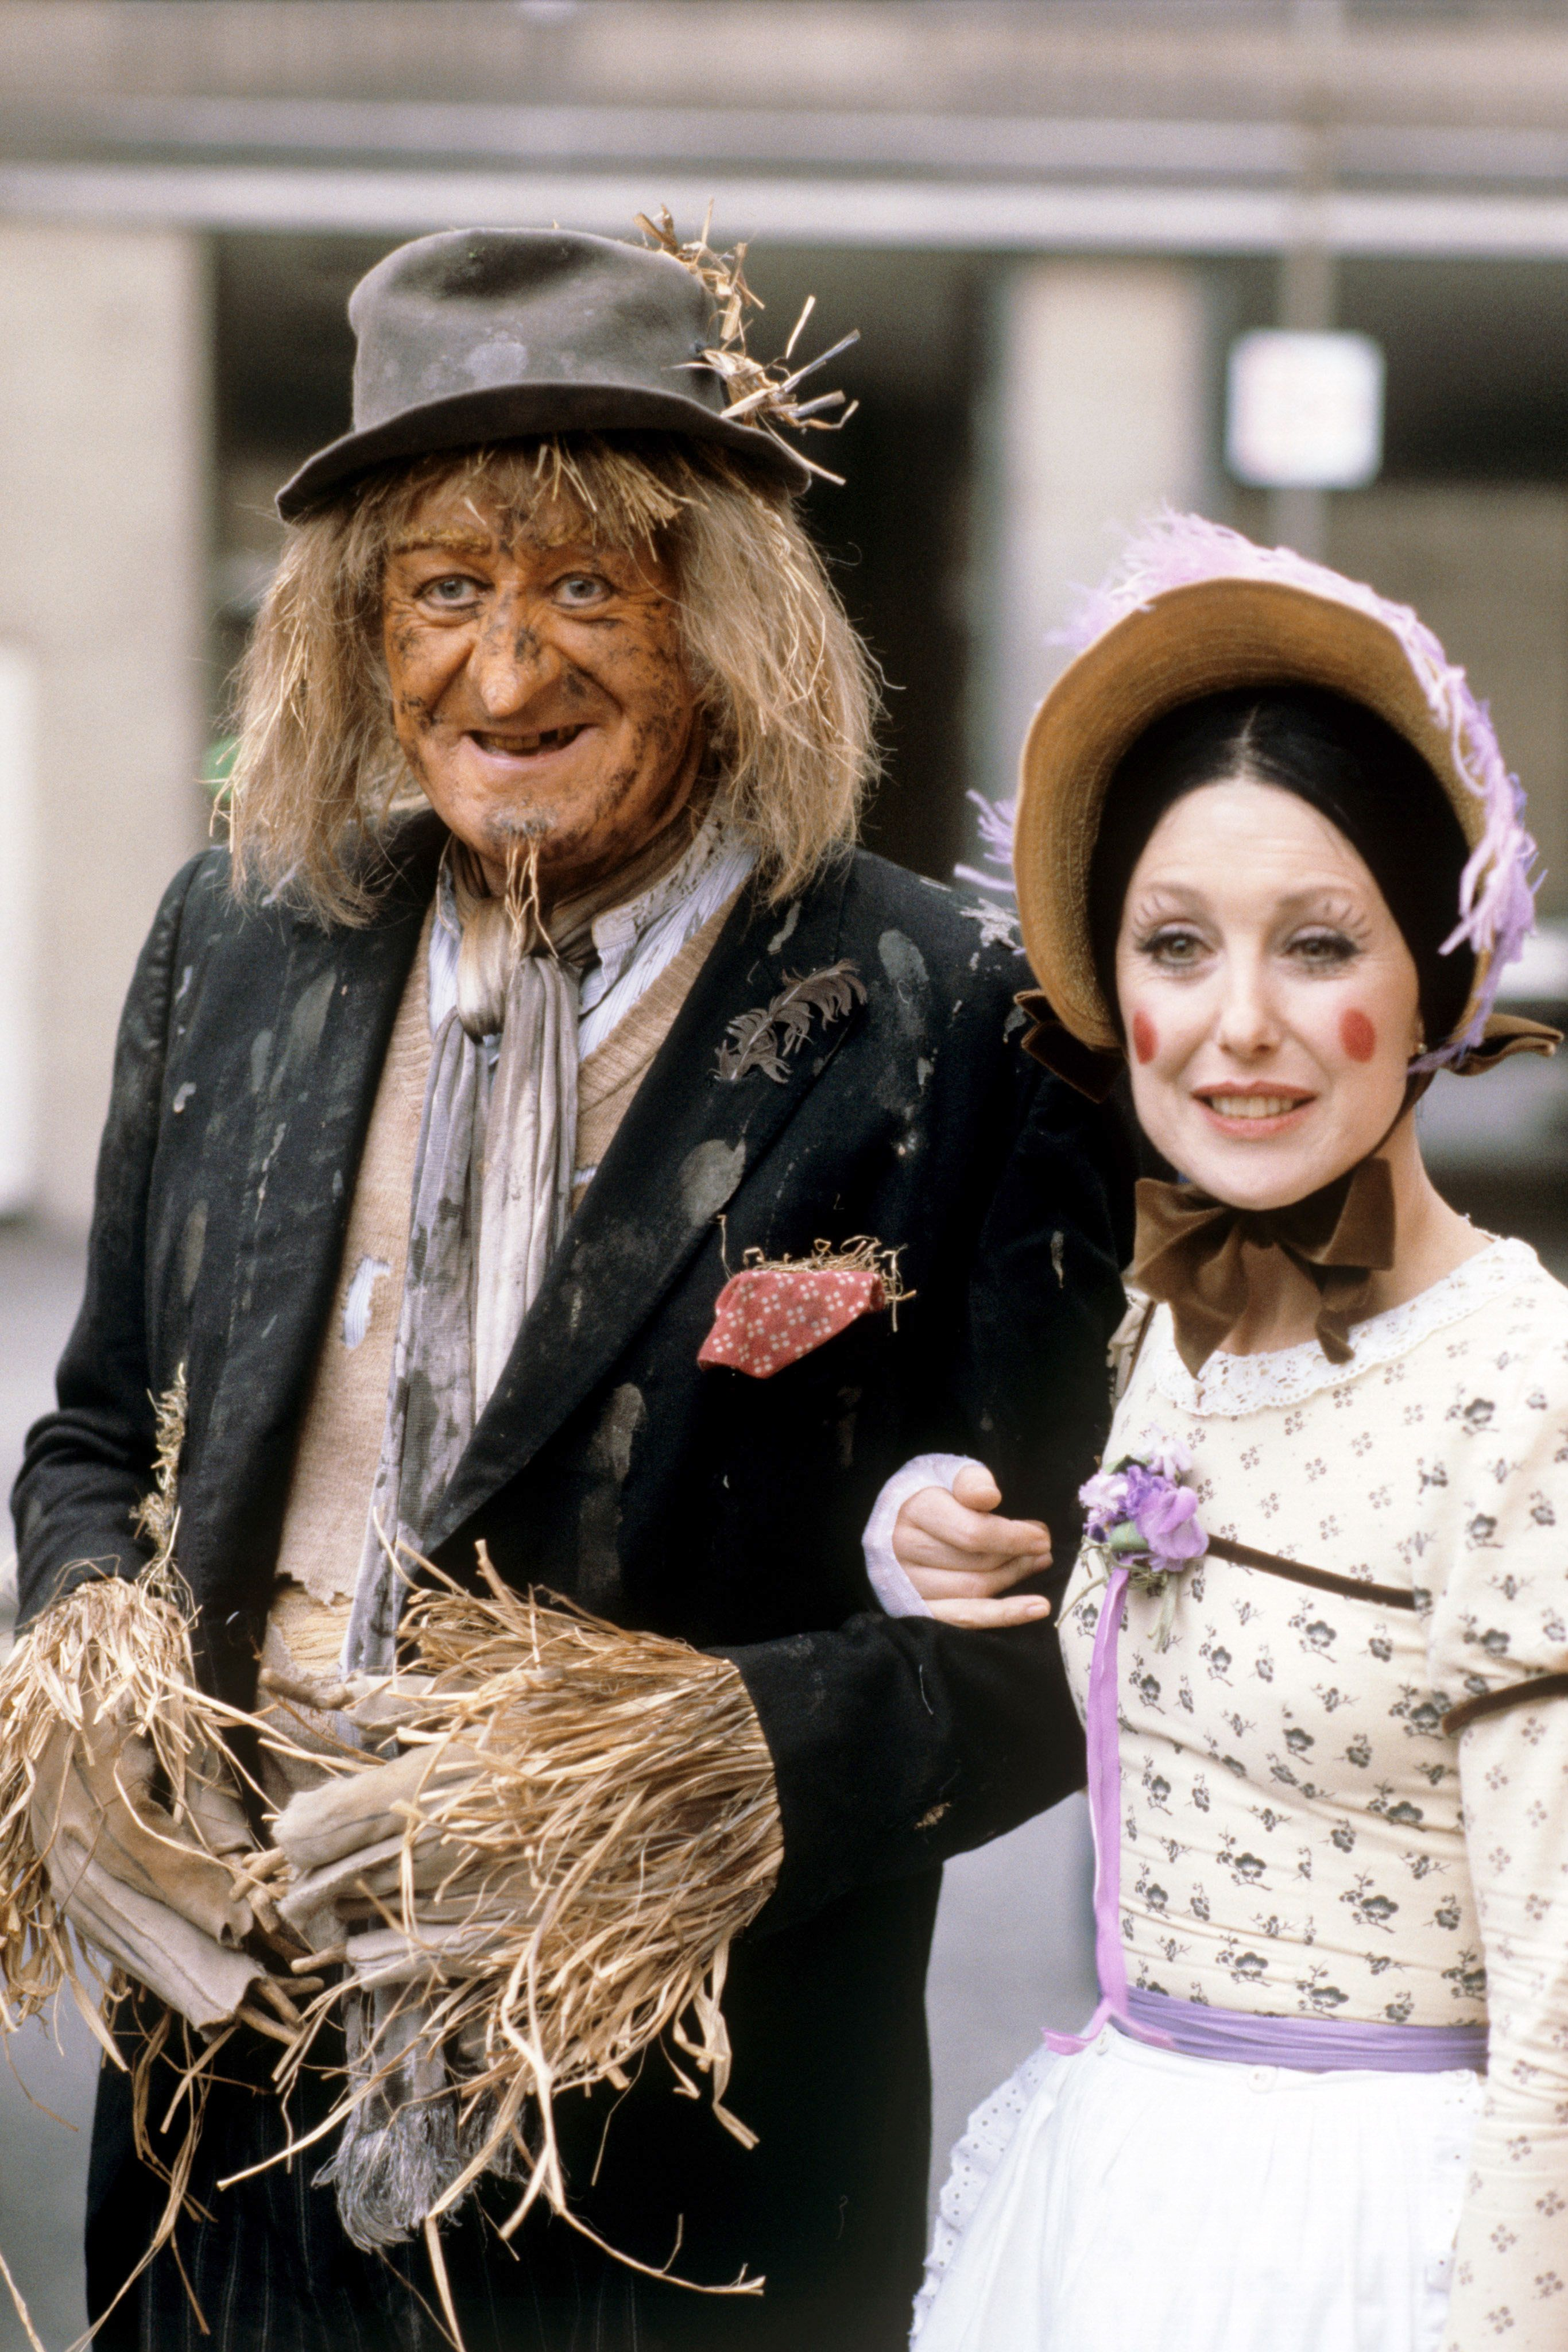 The original Worzel Gummidge (John Pertwee) and Aunt Sally (Una